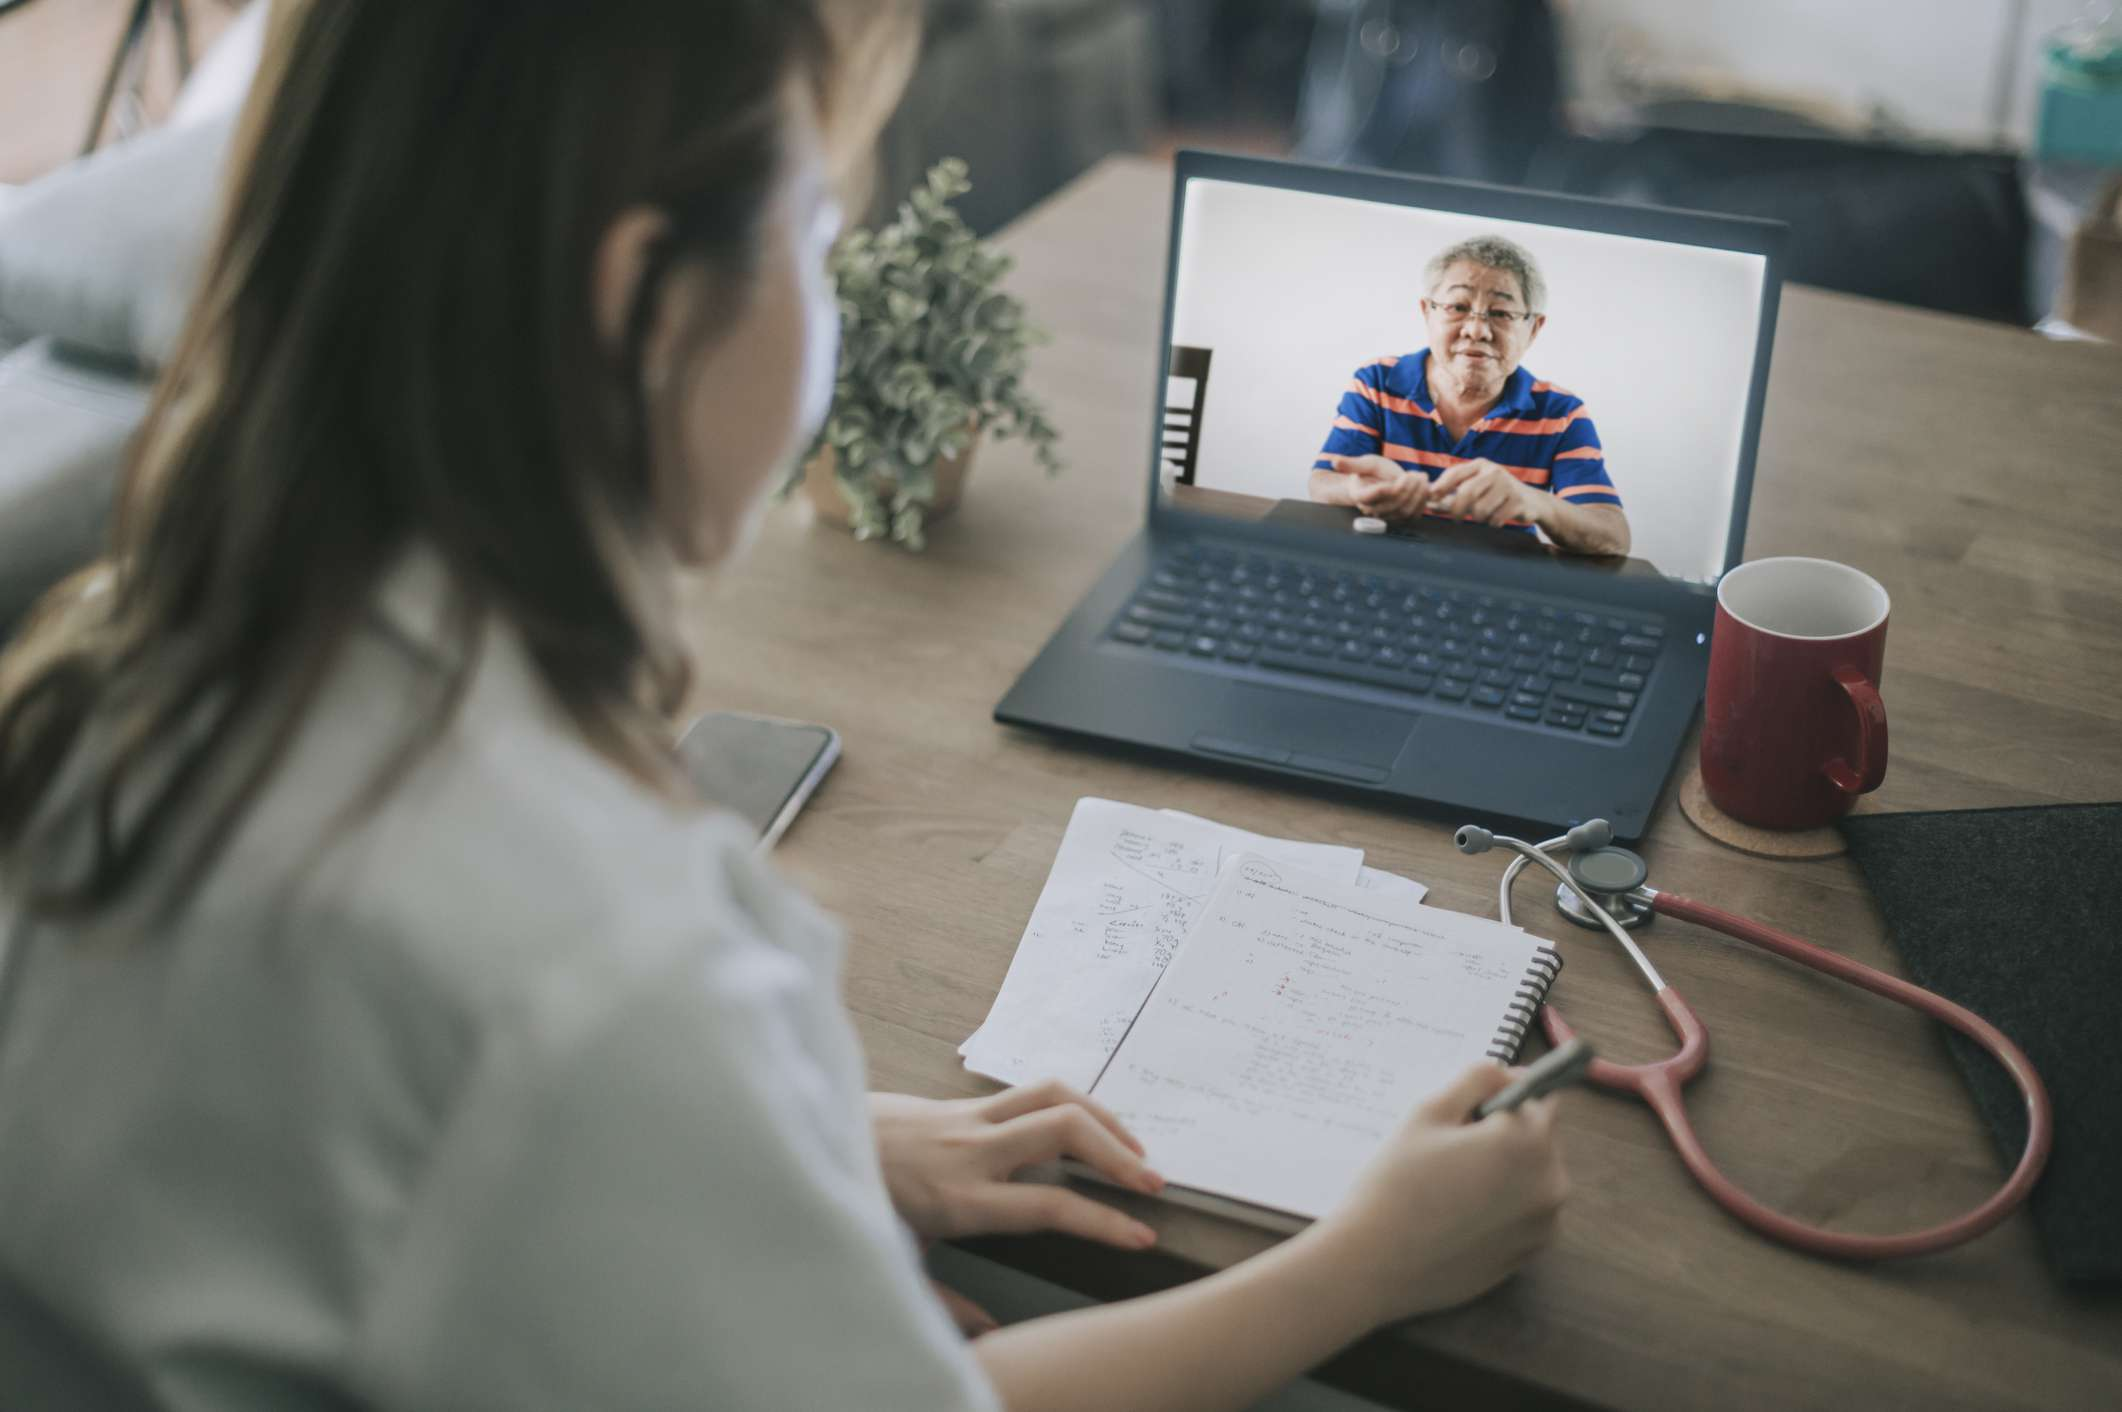 Doctor and patient on telehealth visit